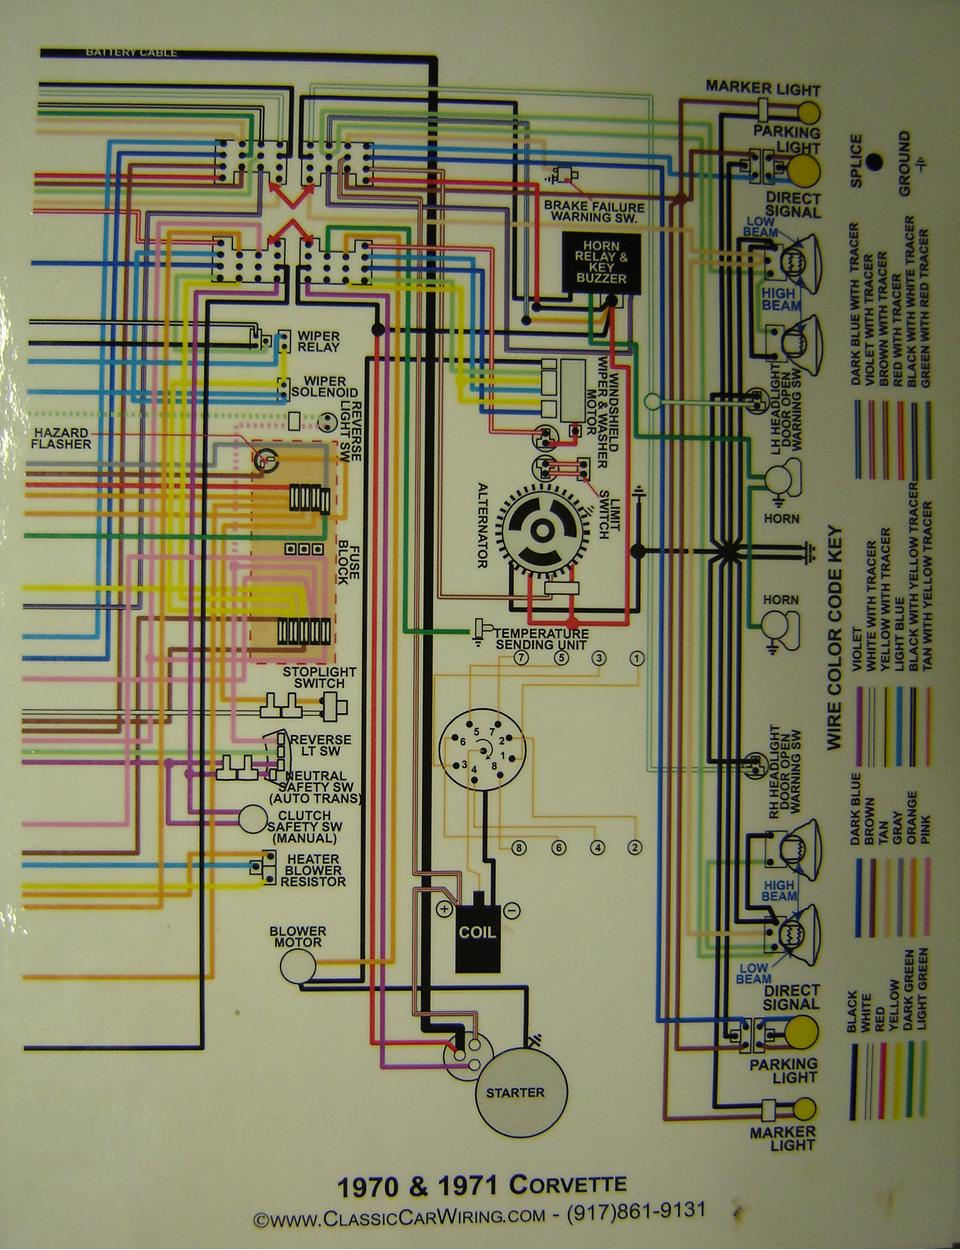 1970 71 corvette color wiring diagram B chevy diagrams 1989 corvette engine wiring harness at nearapp.co